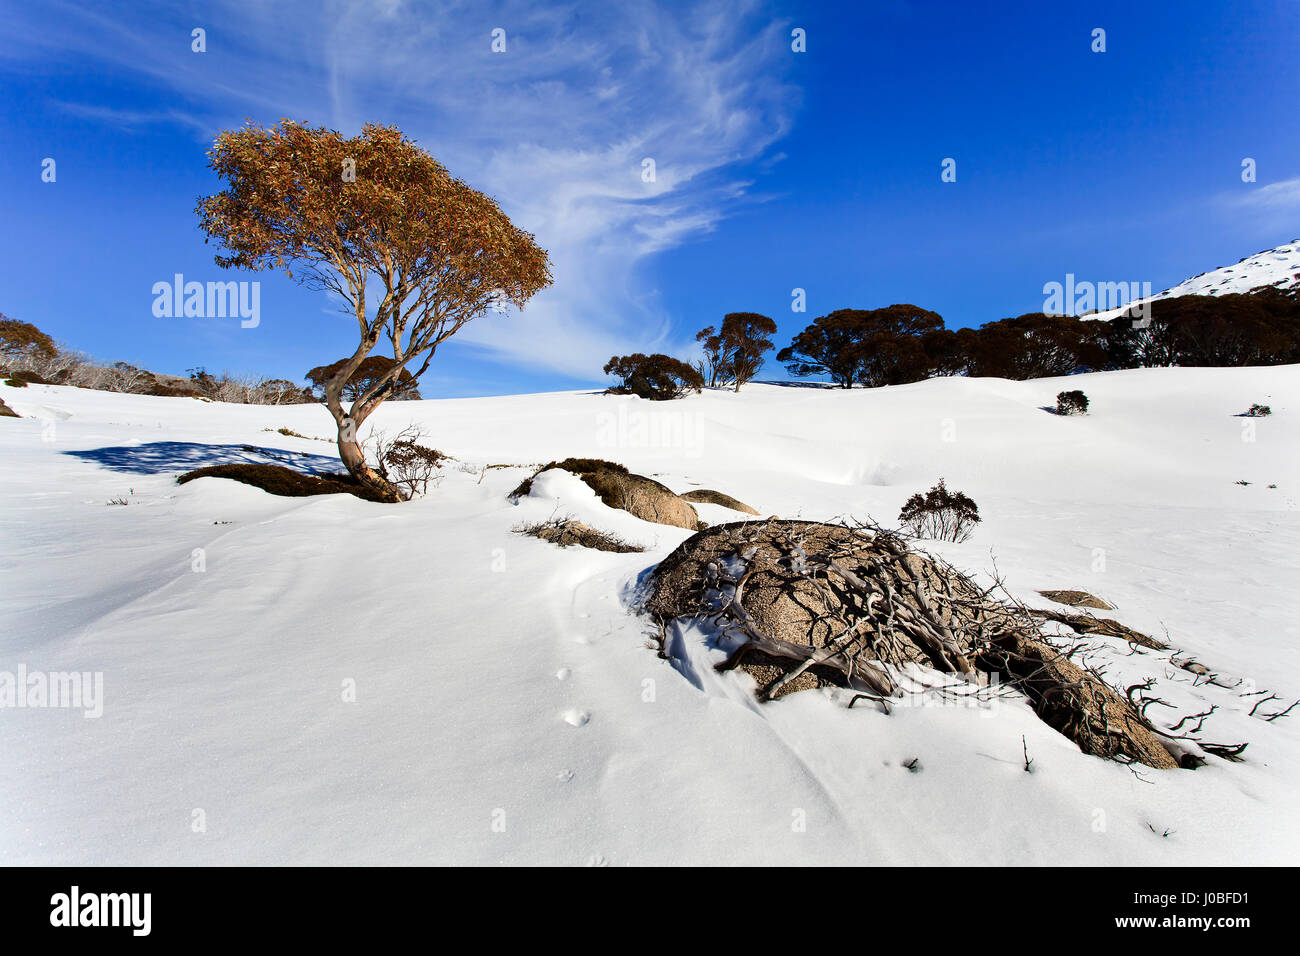 Hillslops of Snowy Mountains national park skiing resorts in Australia, NSW. Snowgum eucalyptus tree with roots - Stock Image